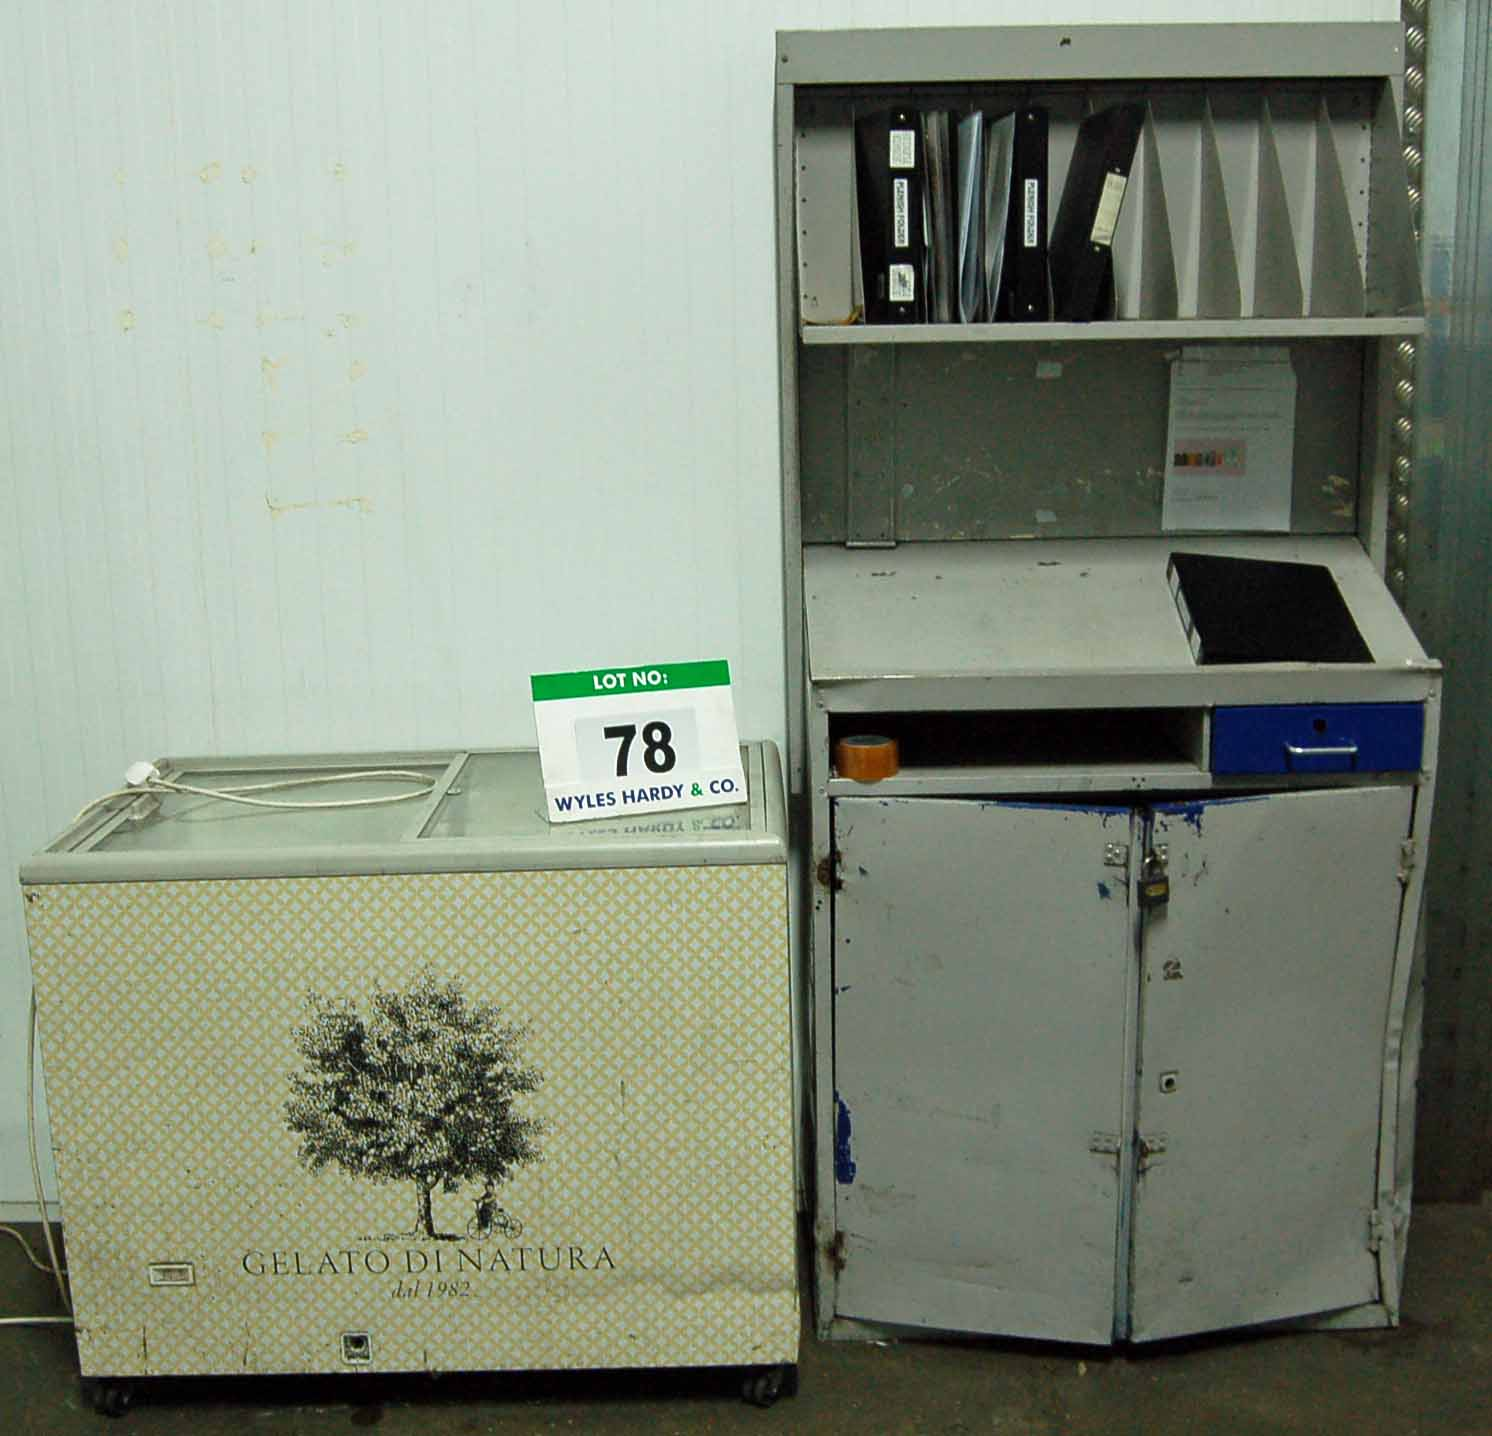 Lot 78 - A Grey/Blue Steel Lectern Cabinet and A Glazed Display Chest Deep Freezer (240V)